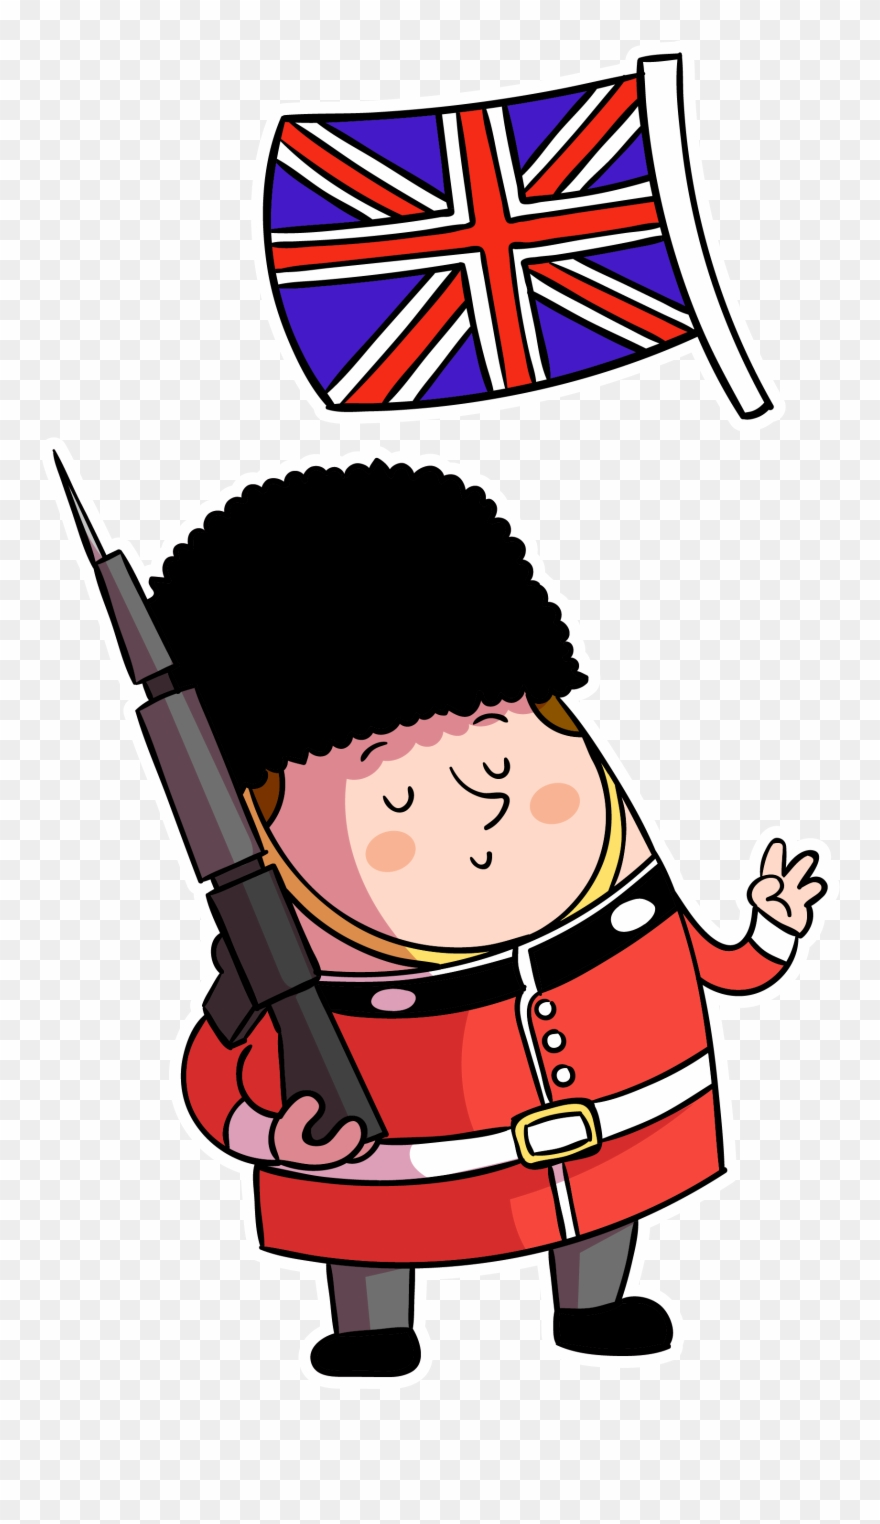 Britigh clipart vector free download Cartoon British Flag - Cartoon Uk Flag Png Clipart (#664847 ... vector free download